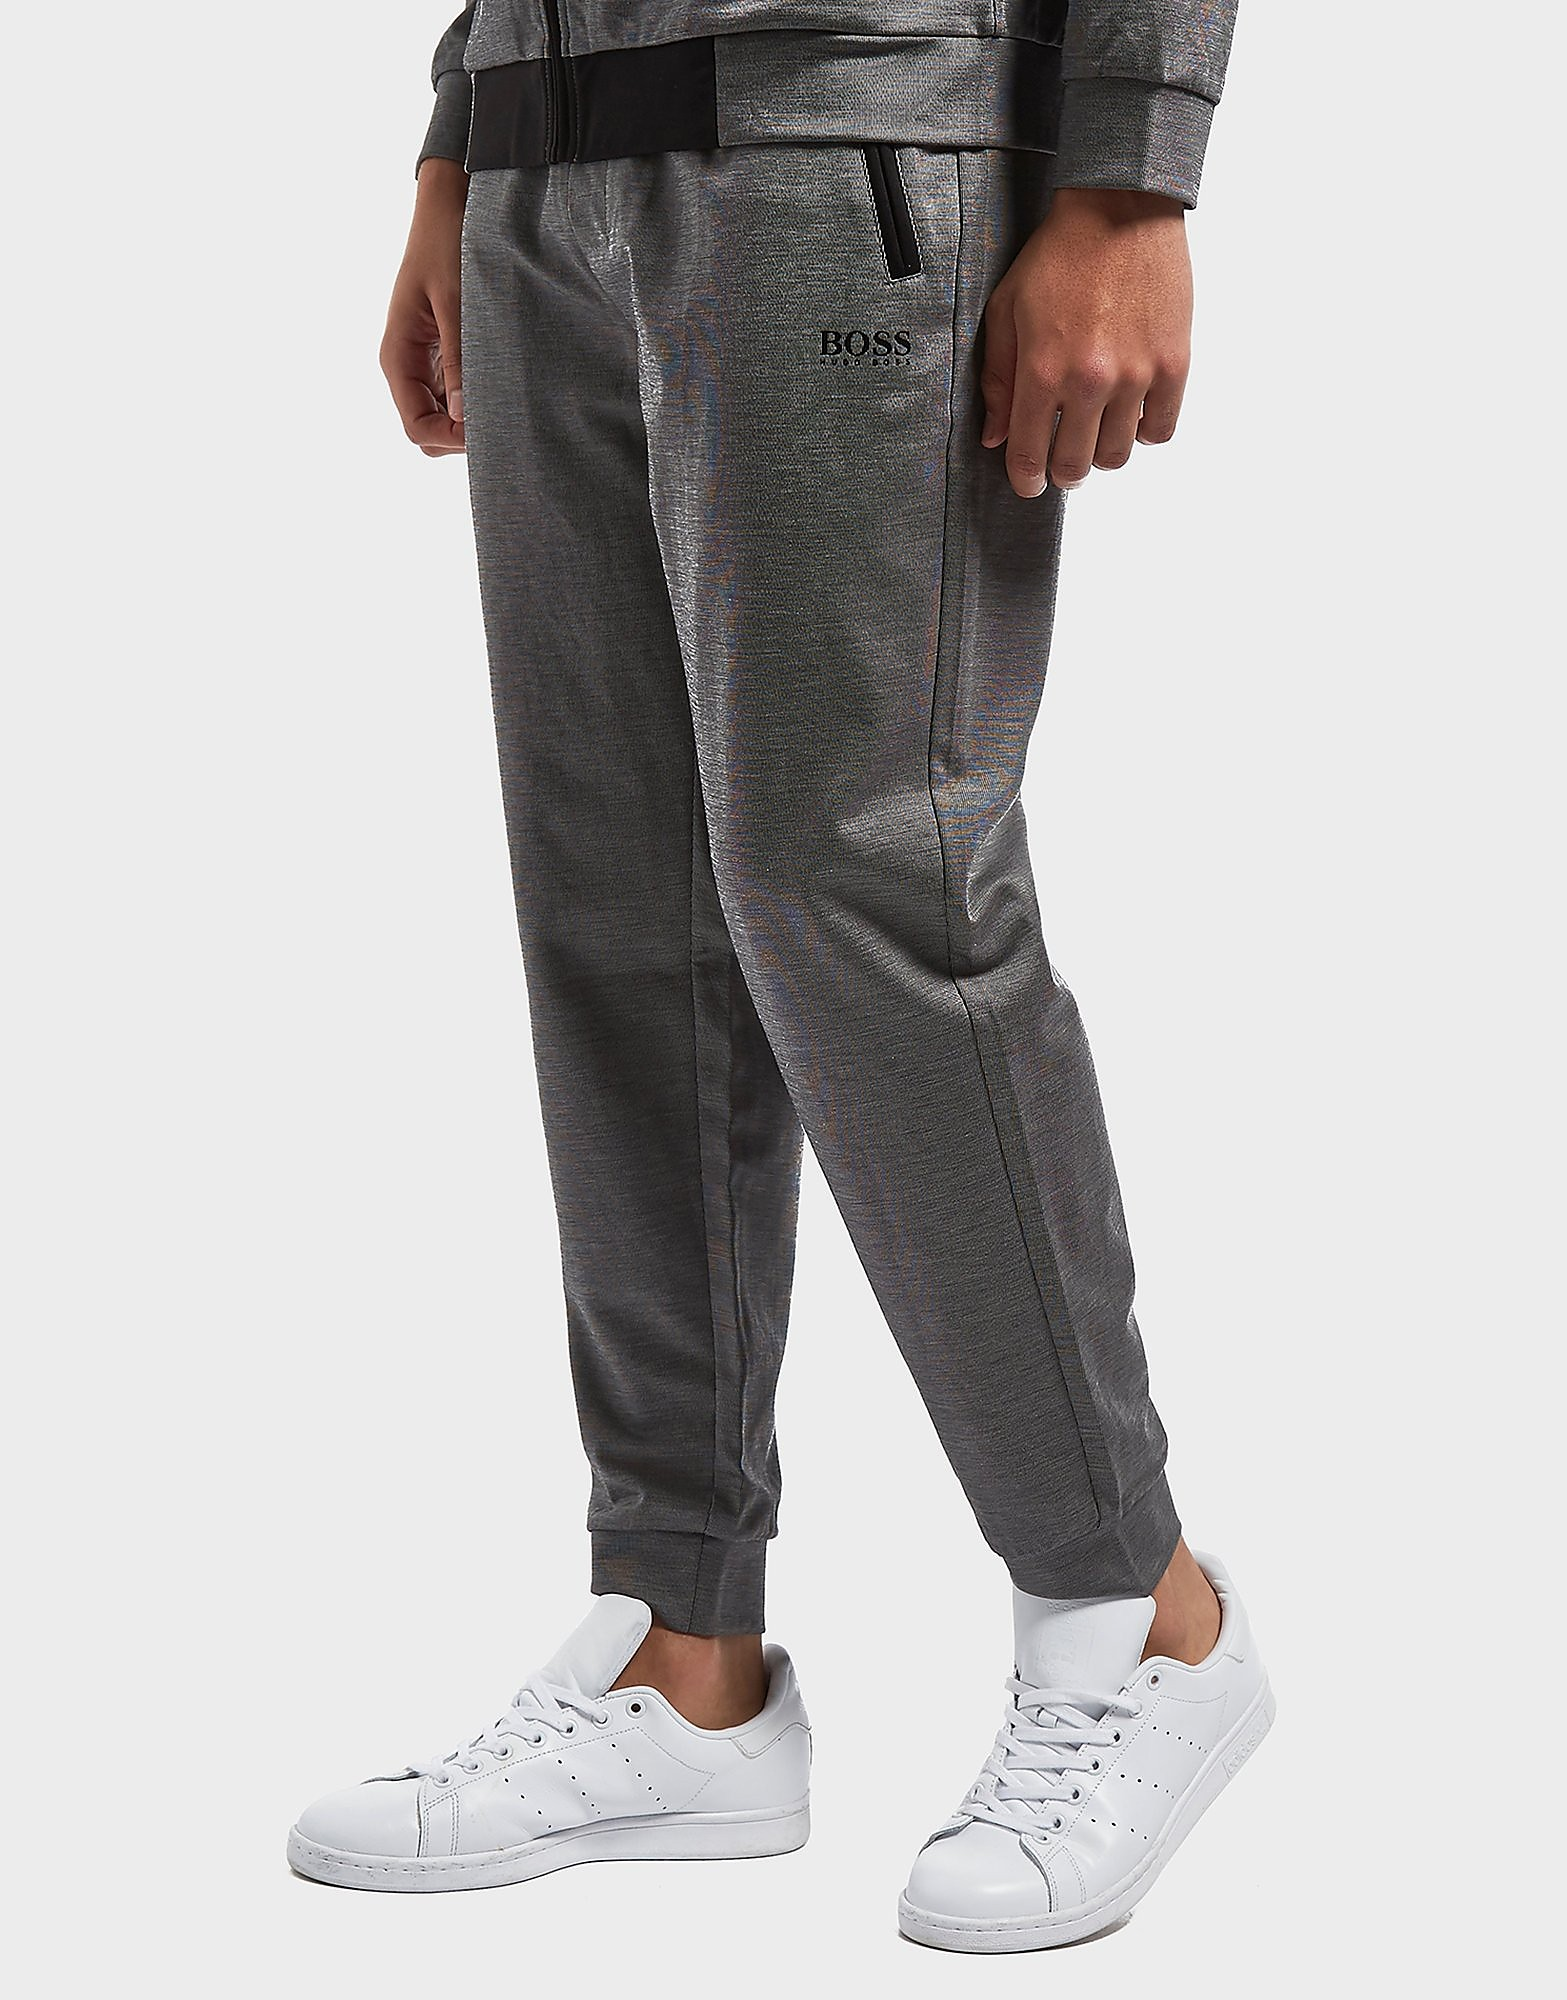 BOSS Interlock Cuffed Track Pants